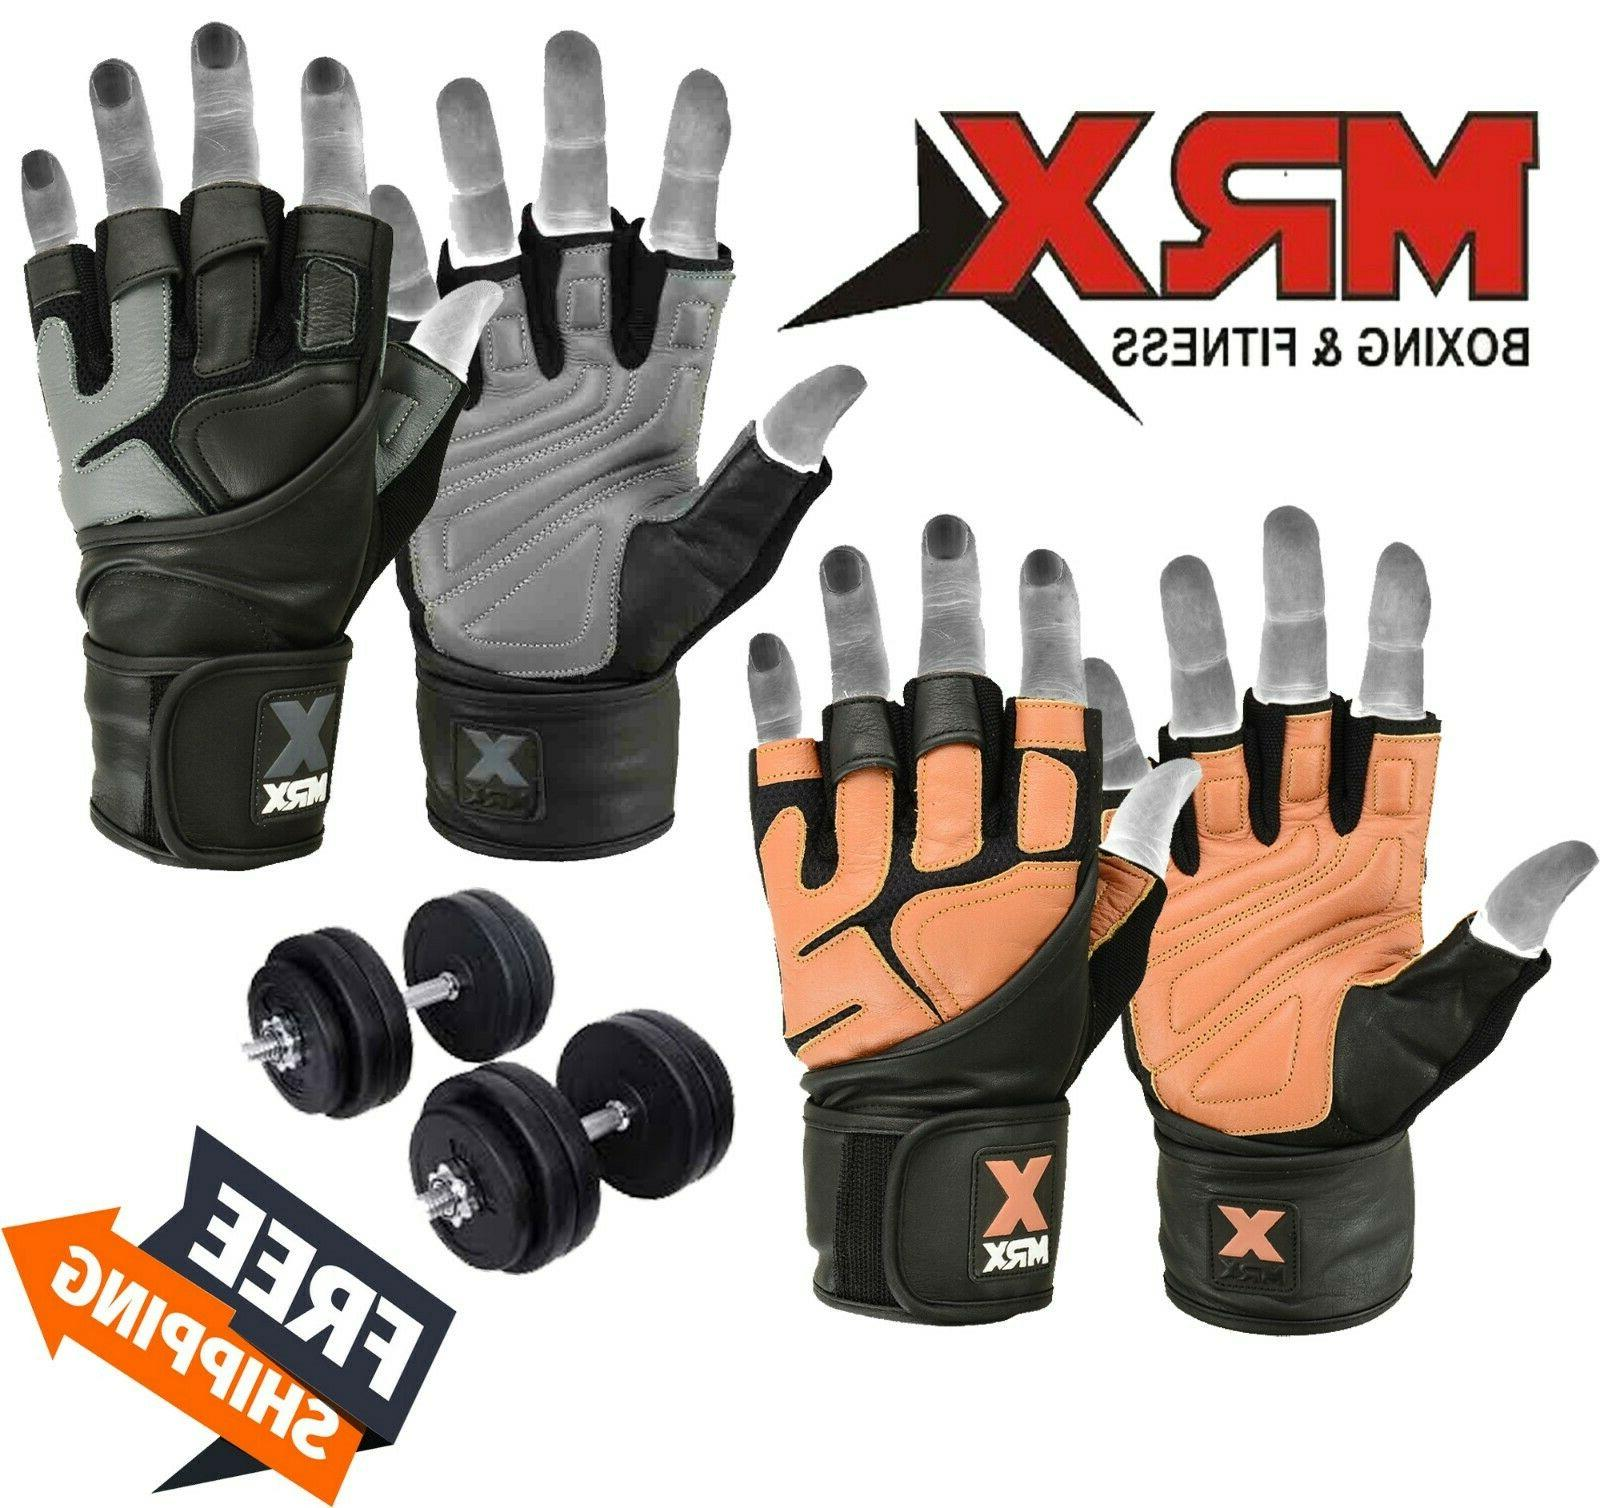 half finger gloves weight lifting gym pro